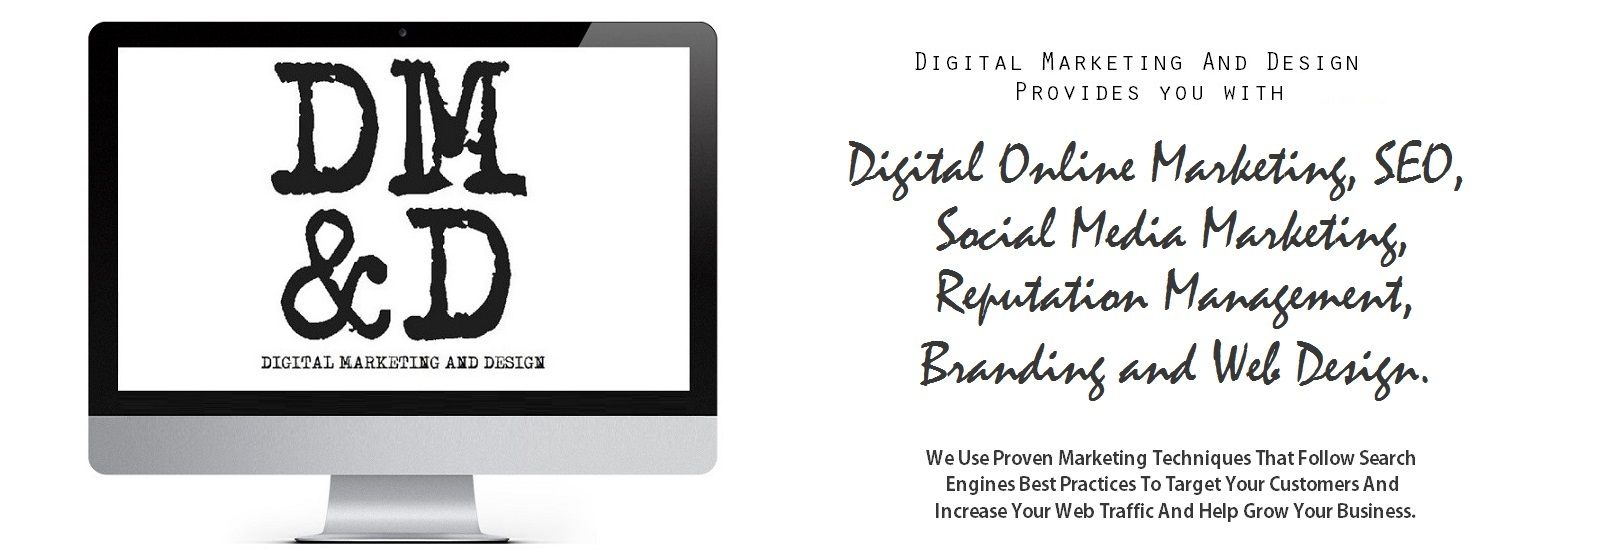 Our Services: SEO, Social Media Marketing, Web Design